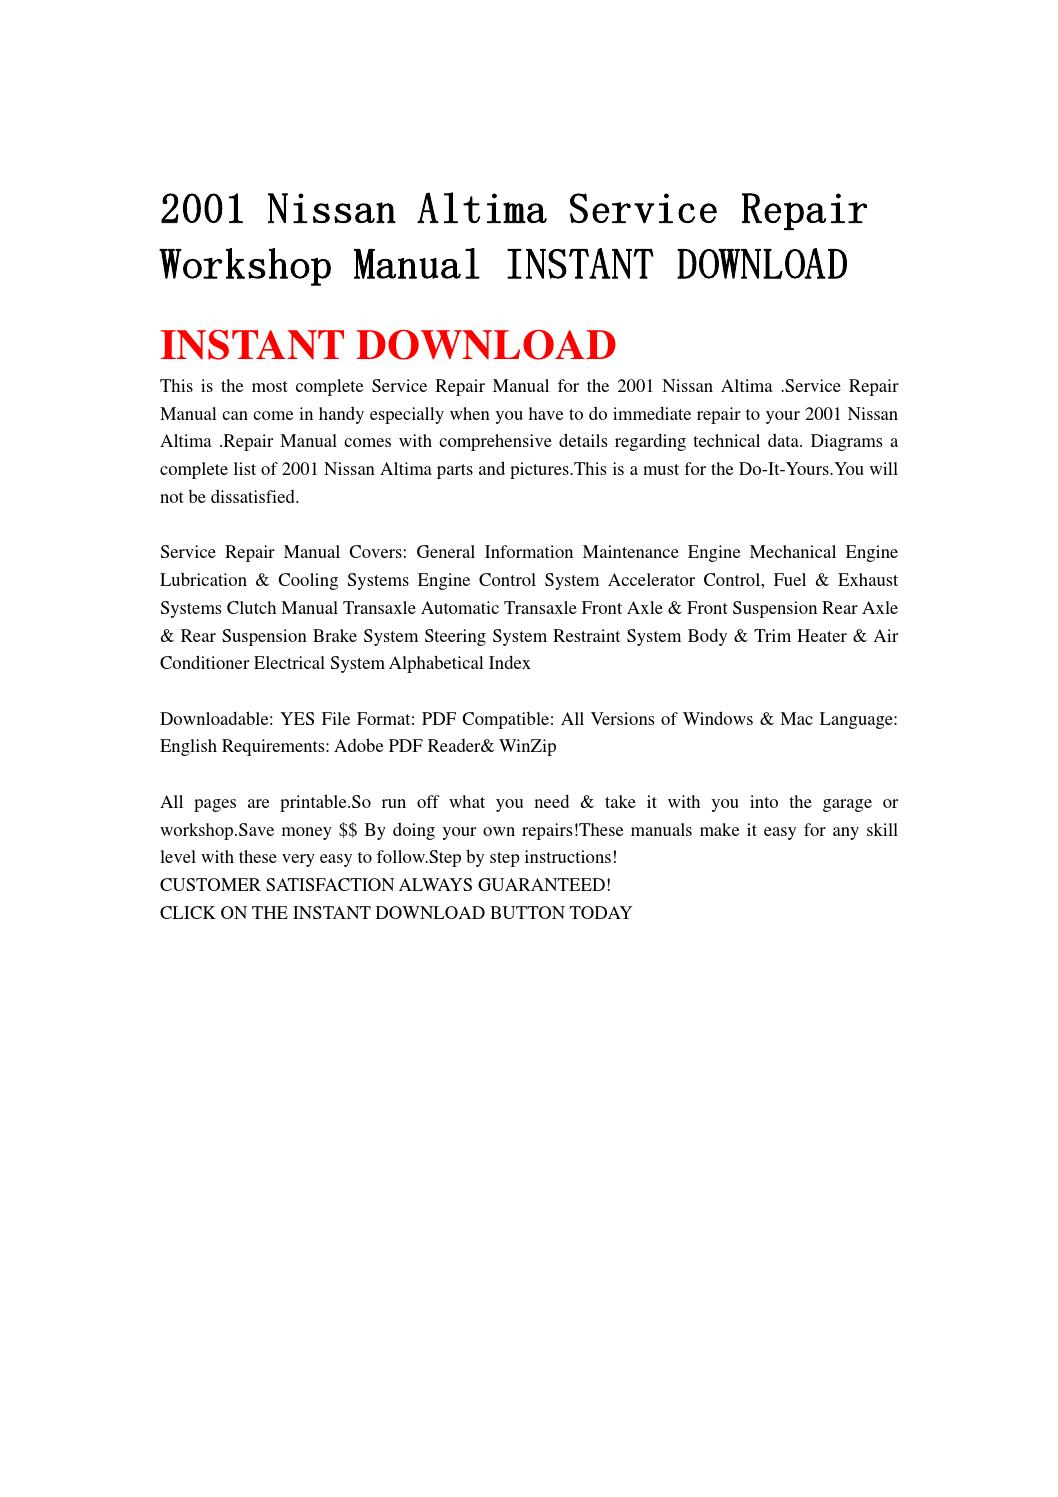 2001 nissan altima service repair workshop manual instant download by  fjhsegfnnse - issuu